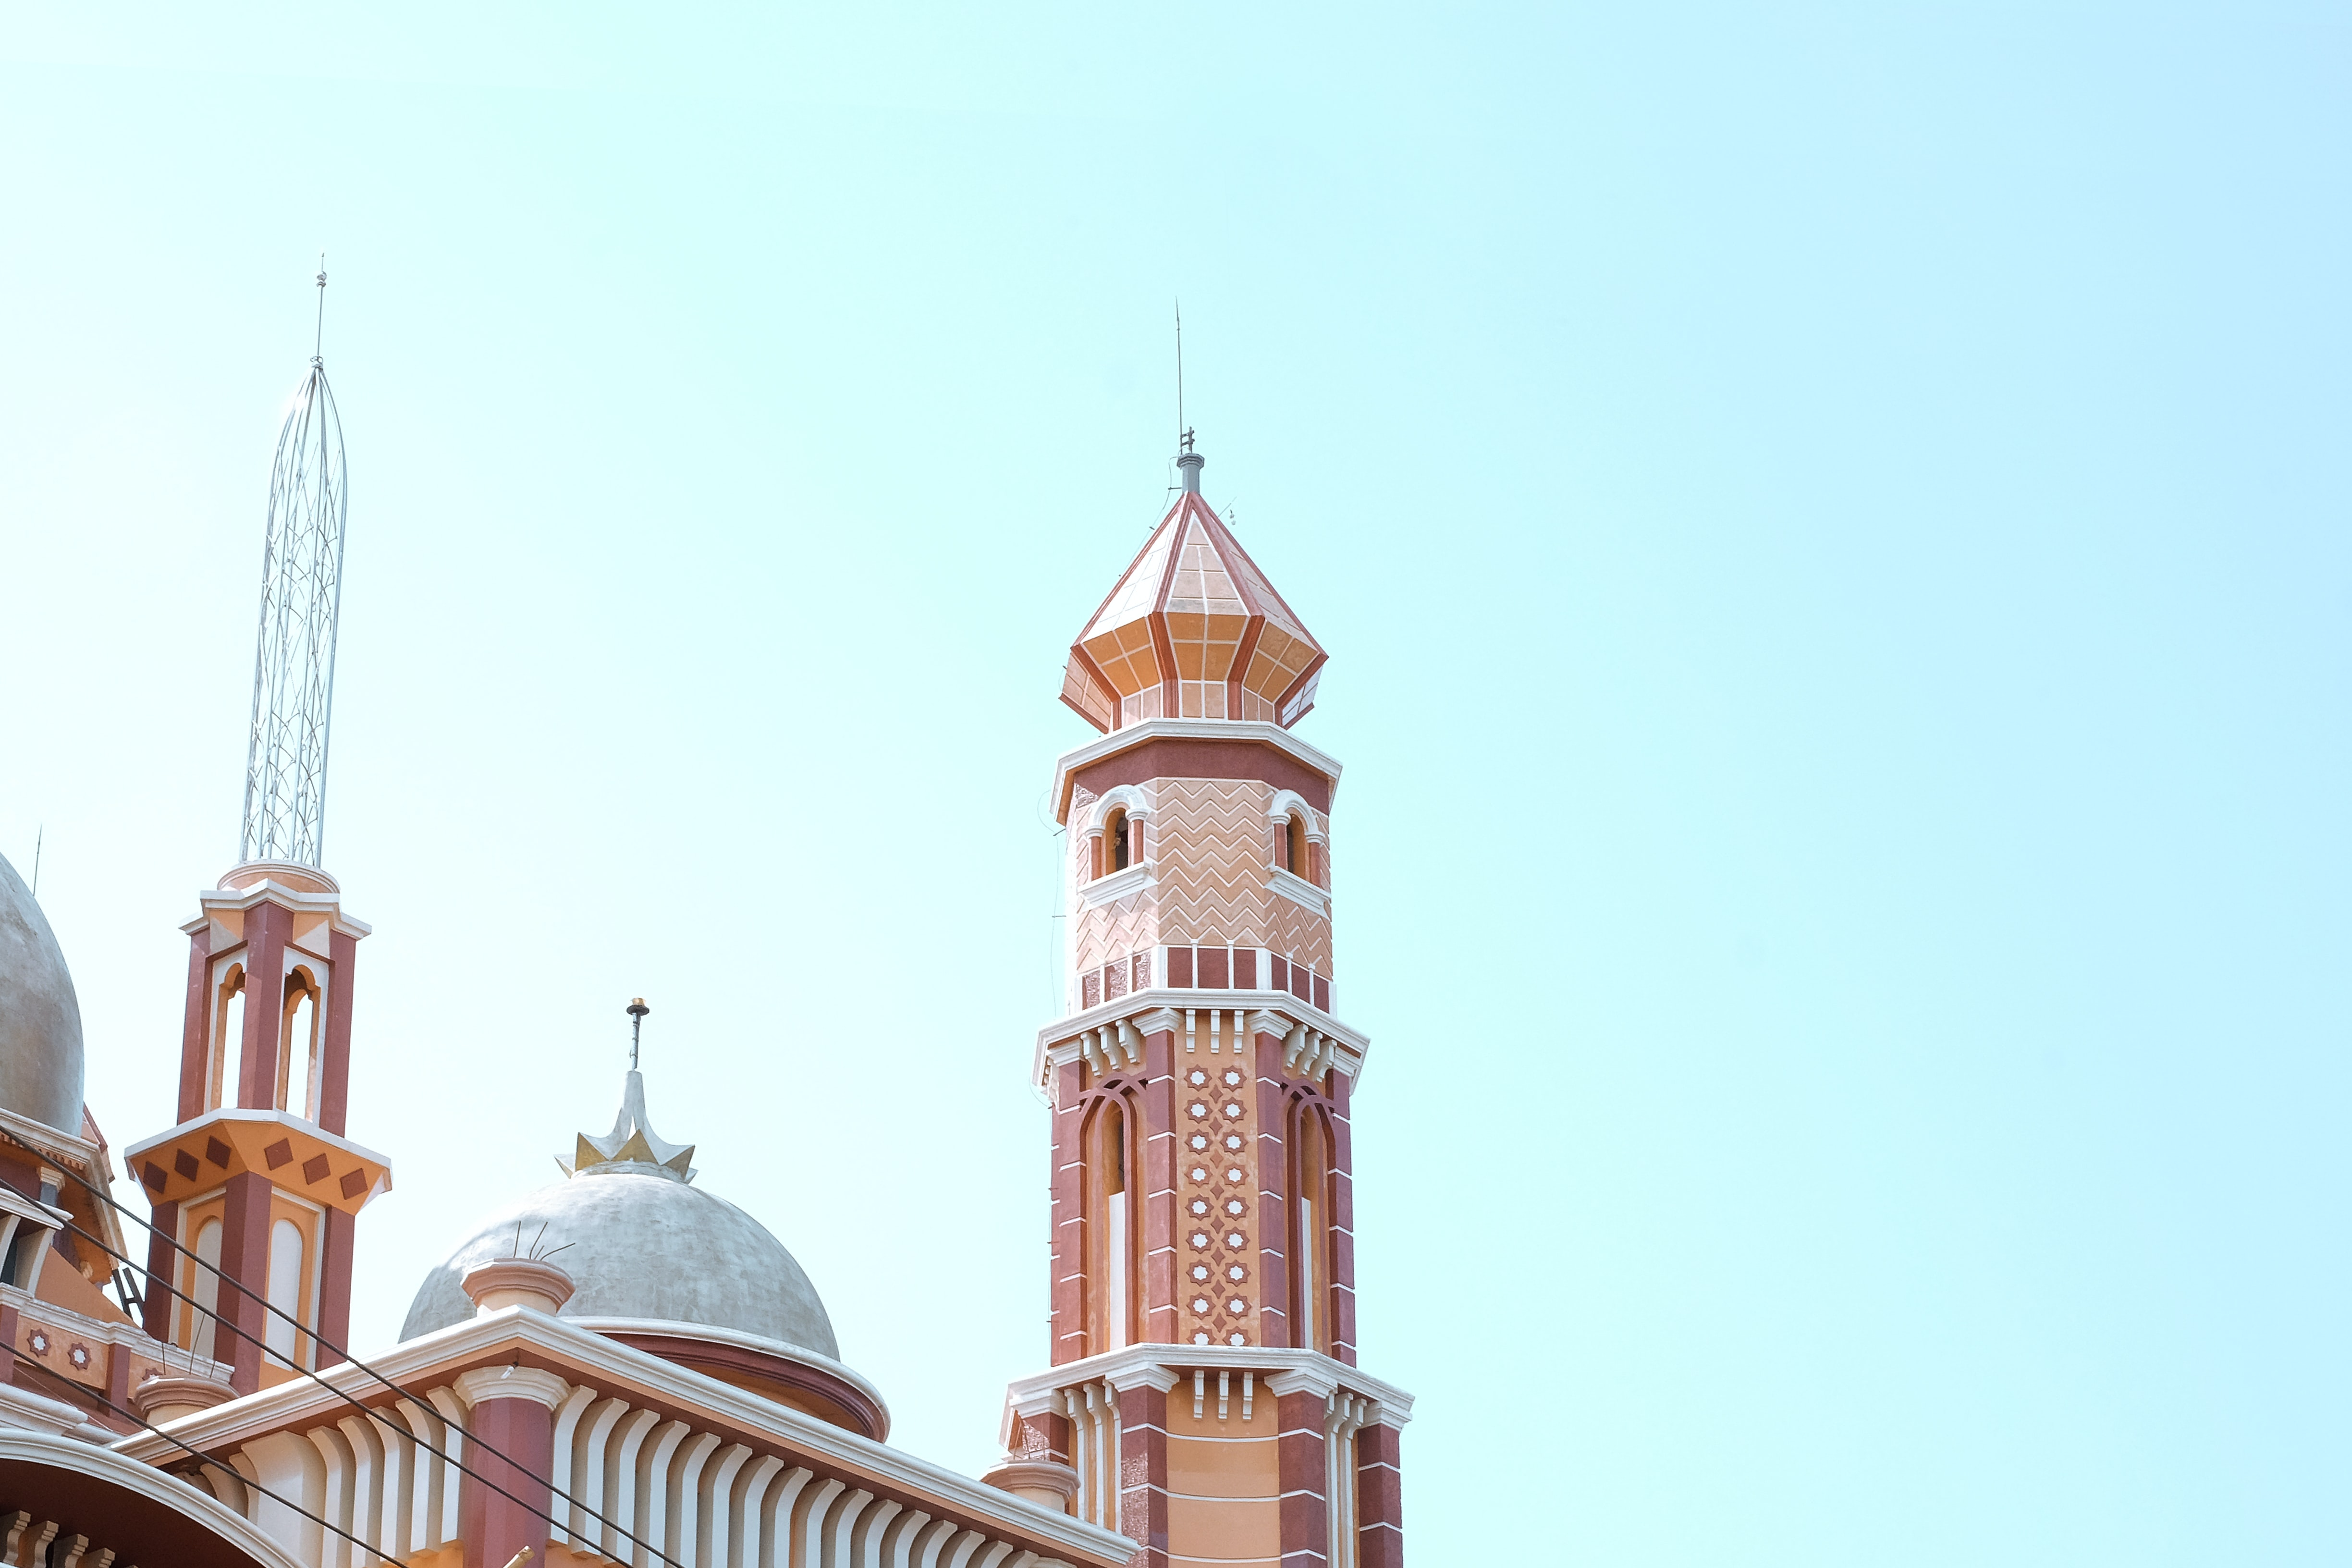 brown and white mosque building